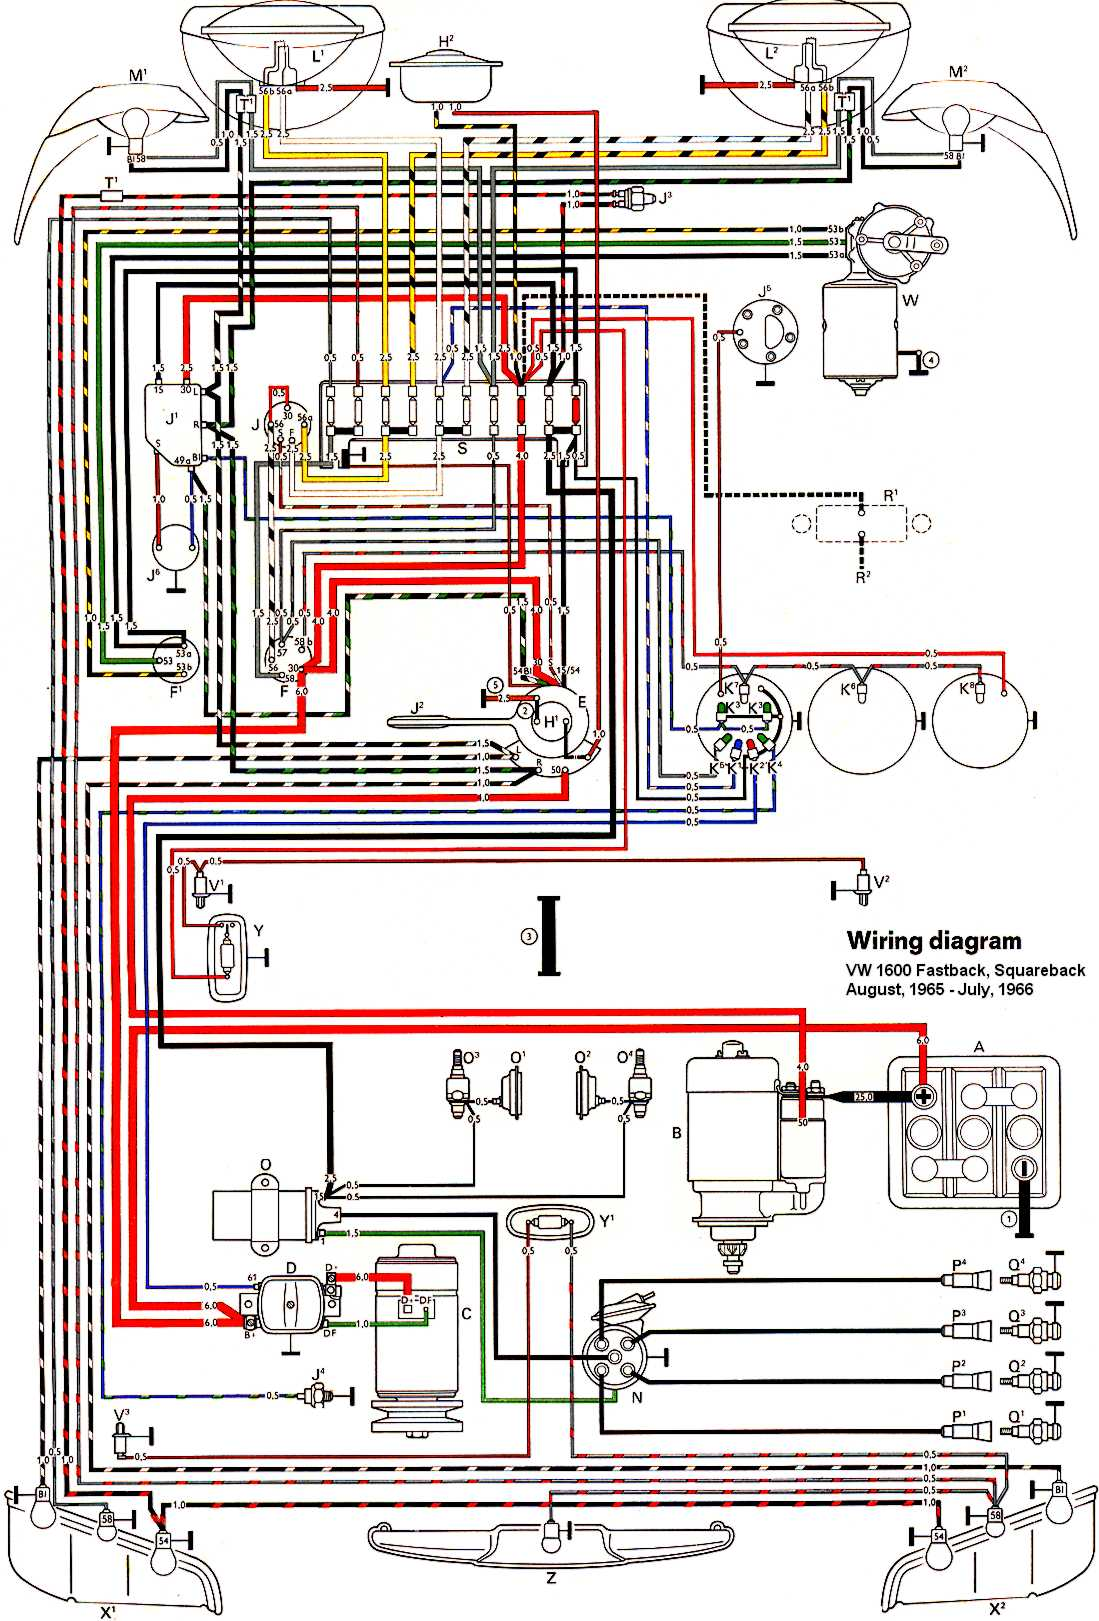 hight resolution of volkswagen 1600 wiring diagram wiring diagram pass vw 1600 coil wiring diagram vw 1600 wiring diagram